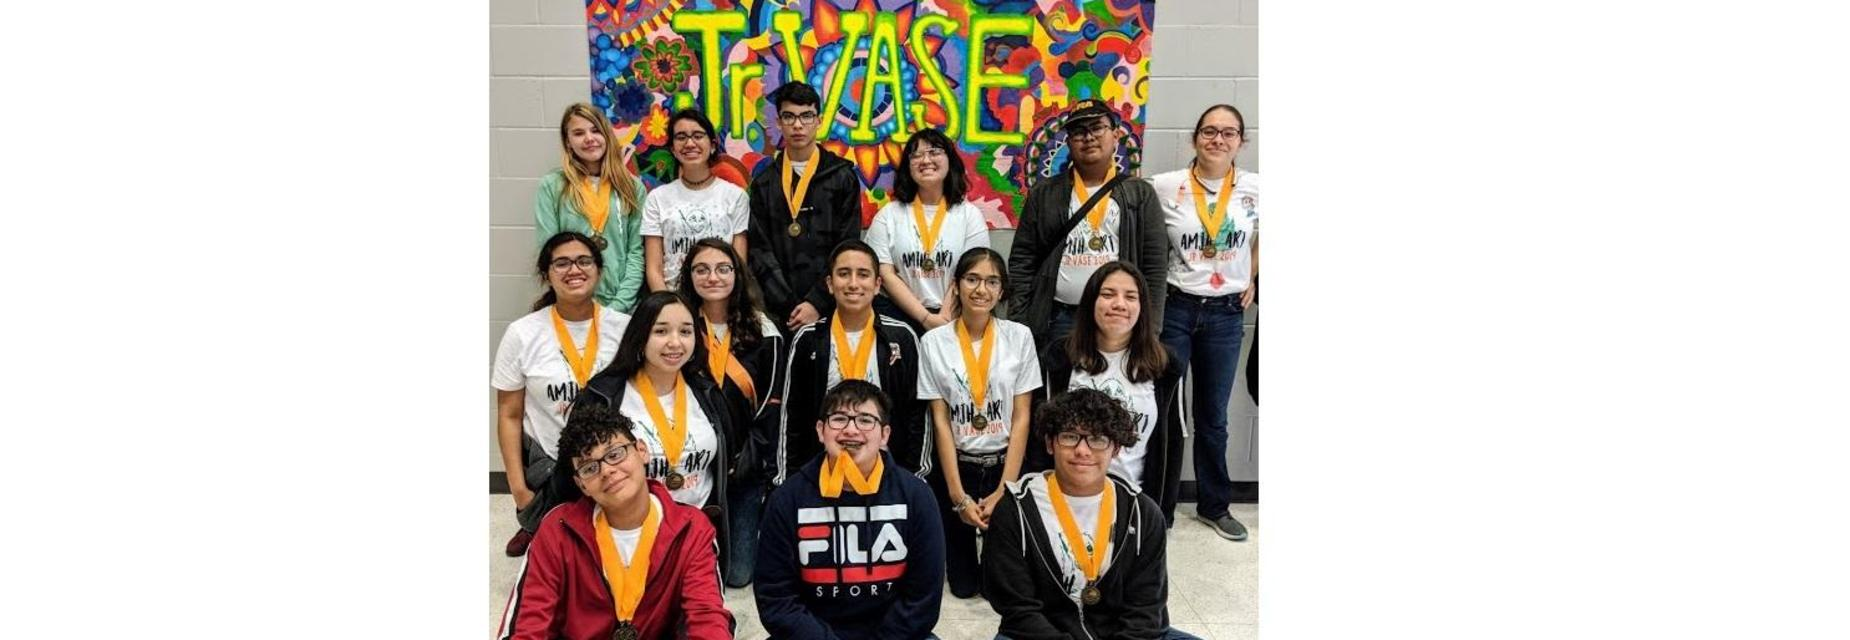 2019 Jr VASE Art competitors brought home 16 medals!